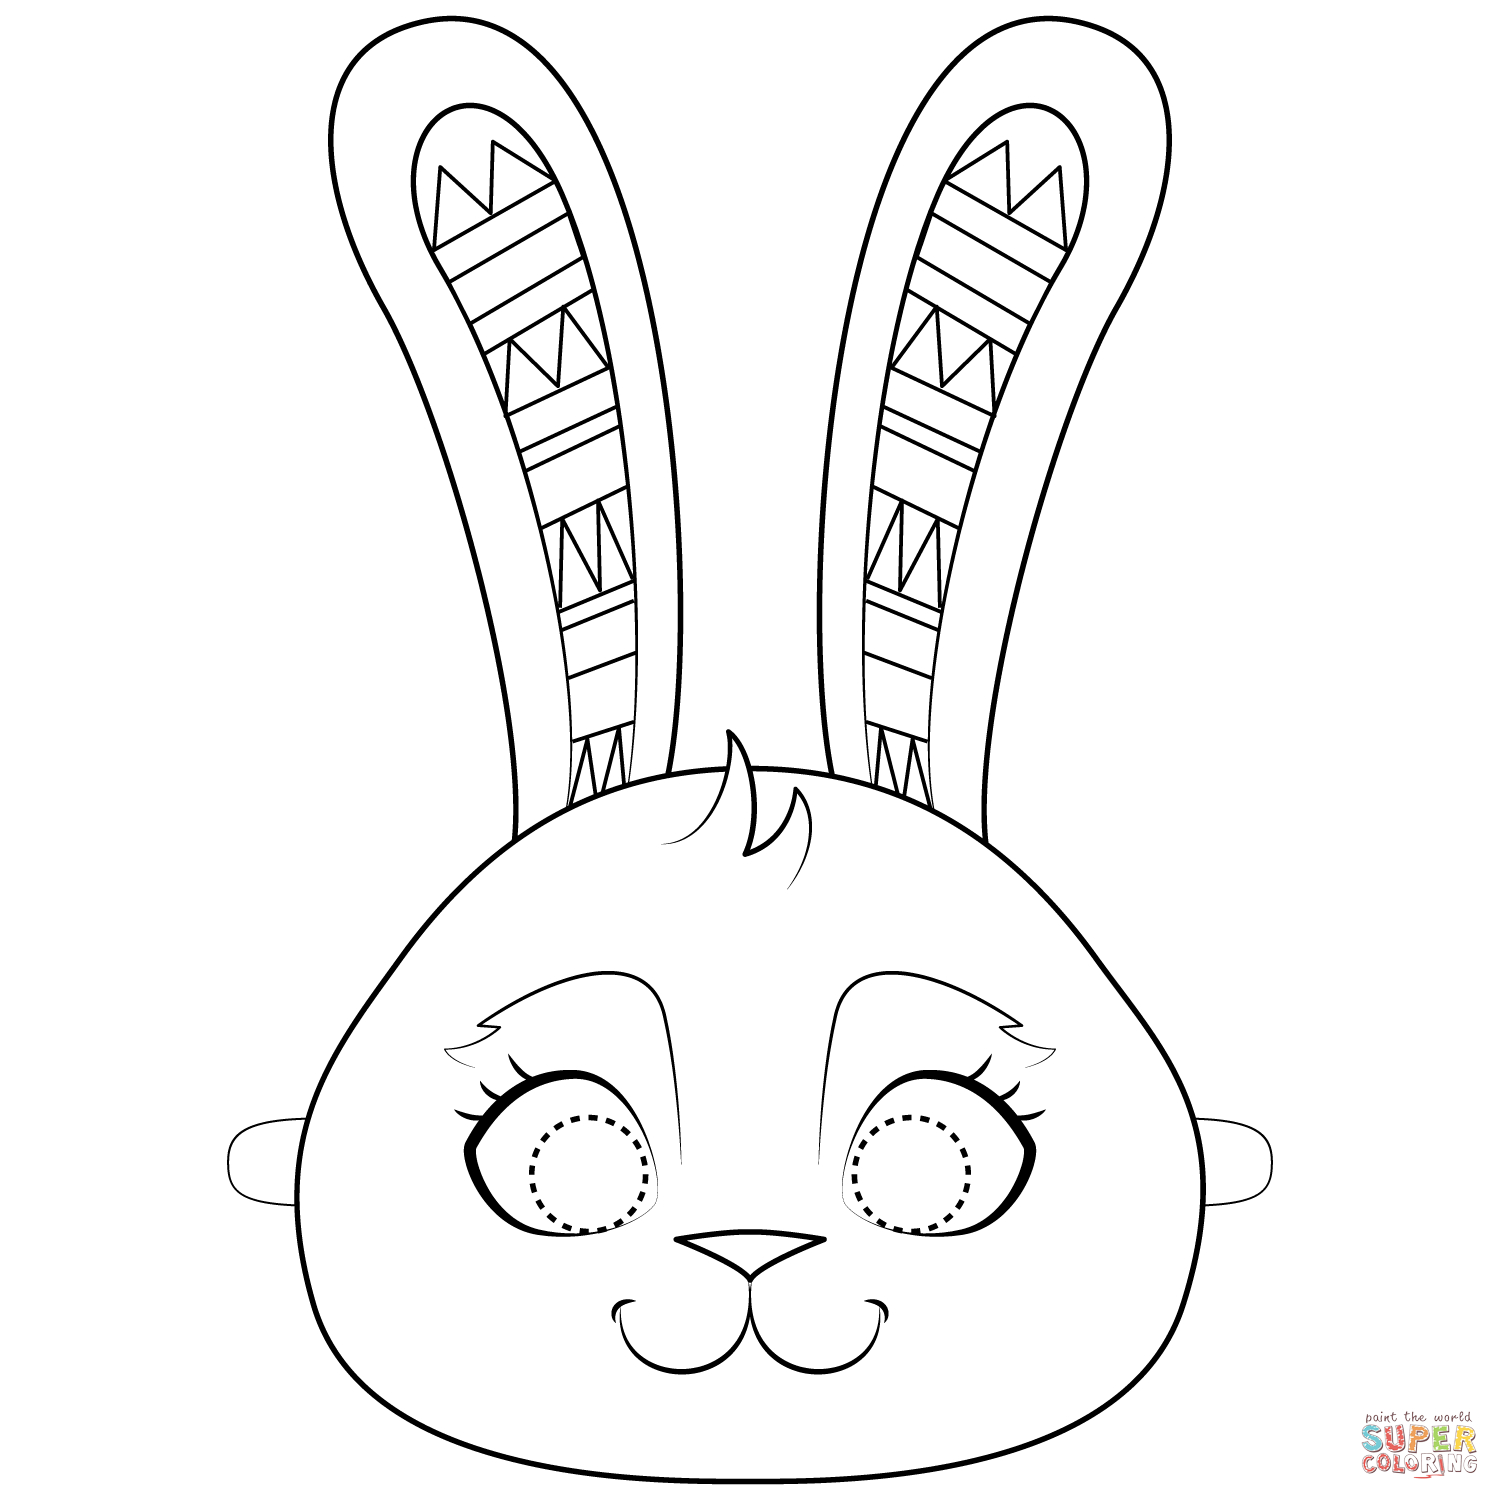 Easter Bunny Mask Coloring Page | Free Printable Coloring Pages - Free Printable Easter Masks